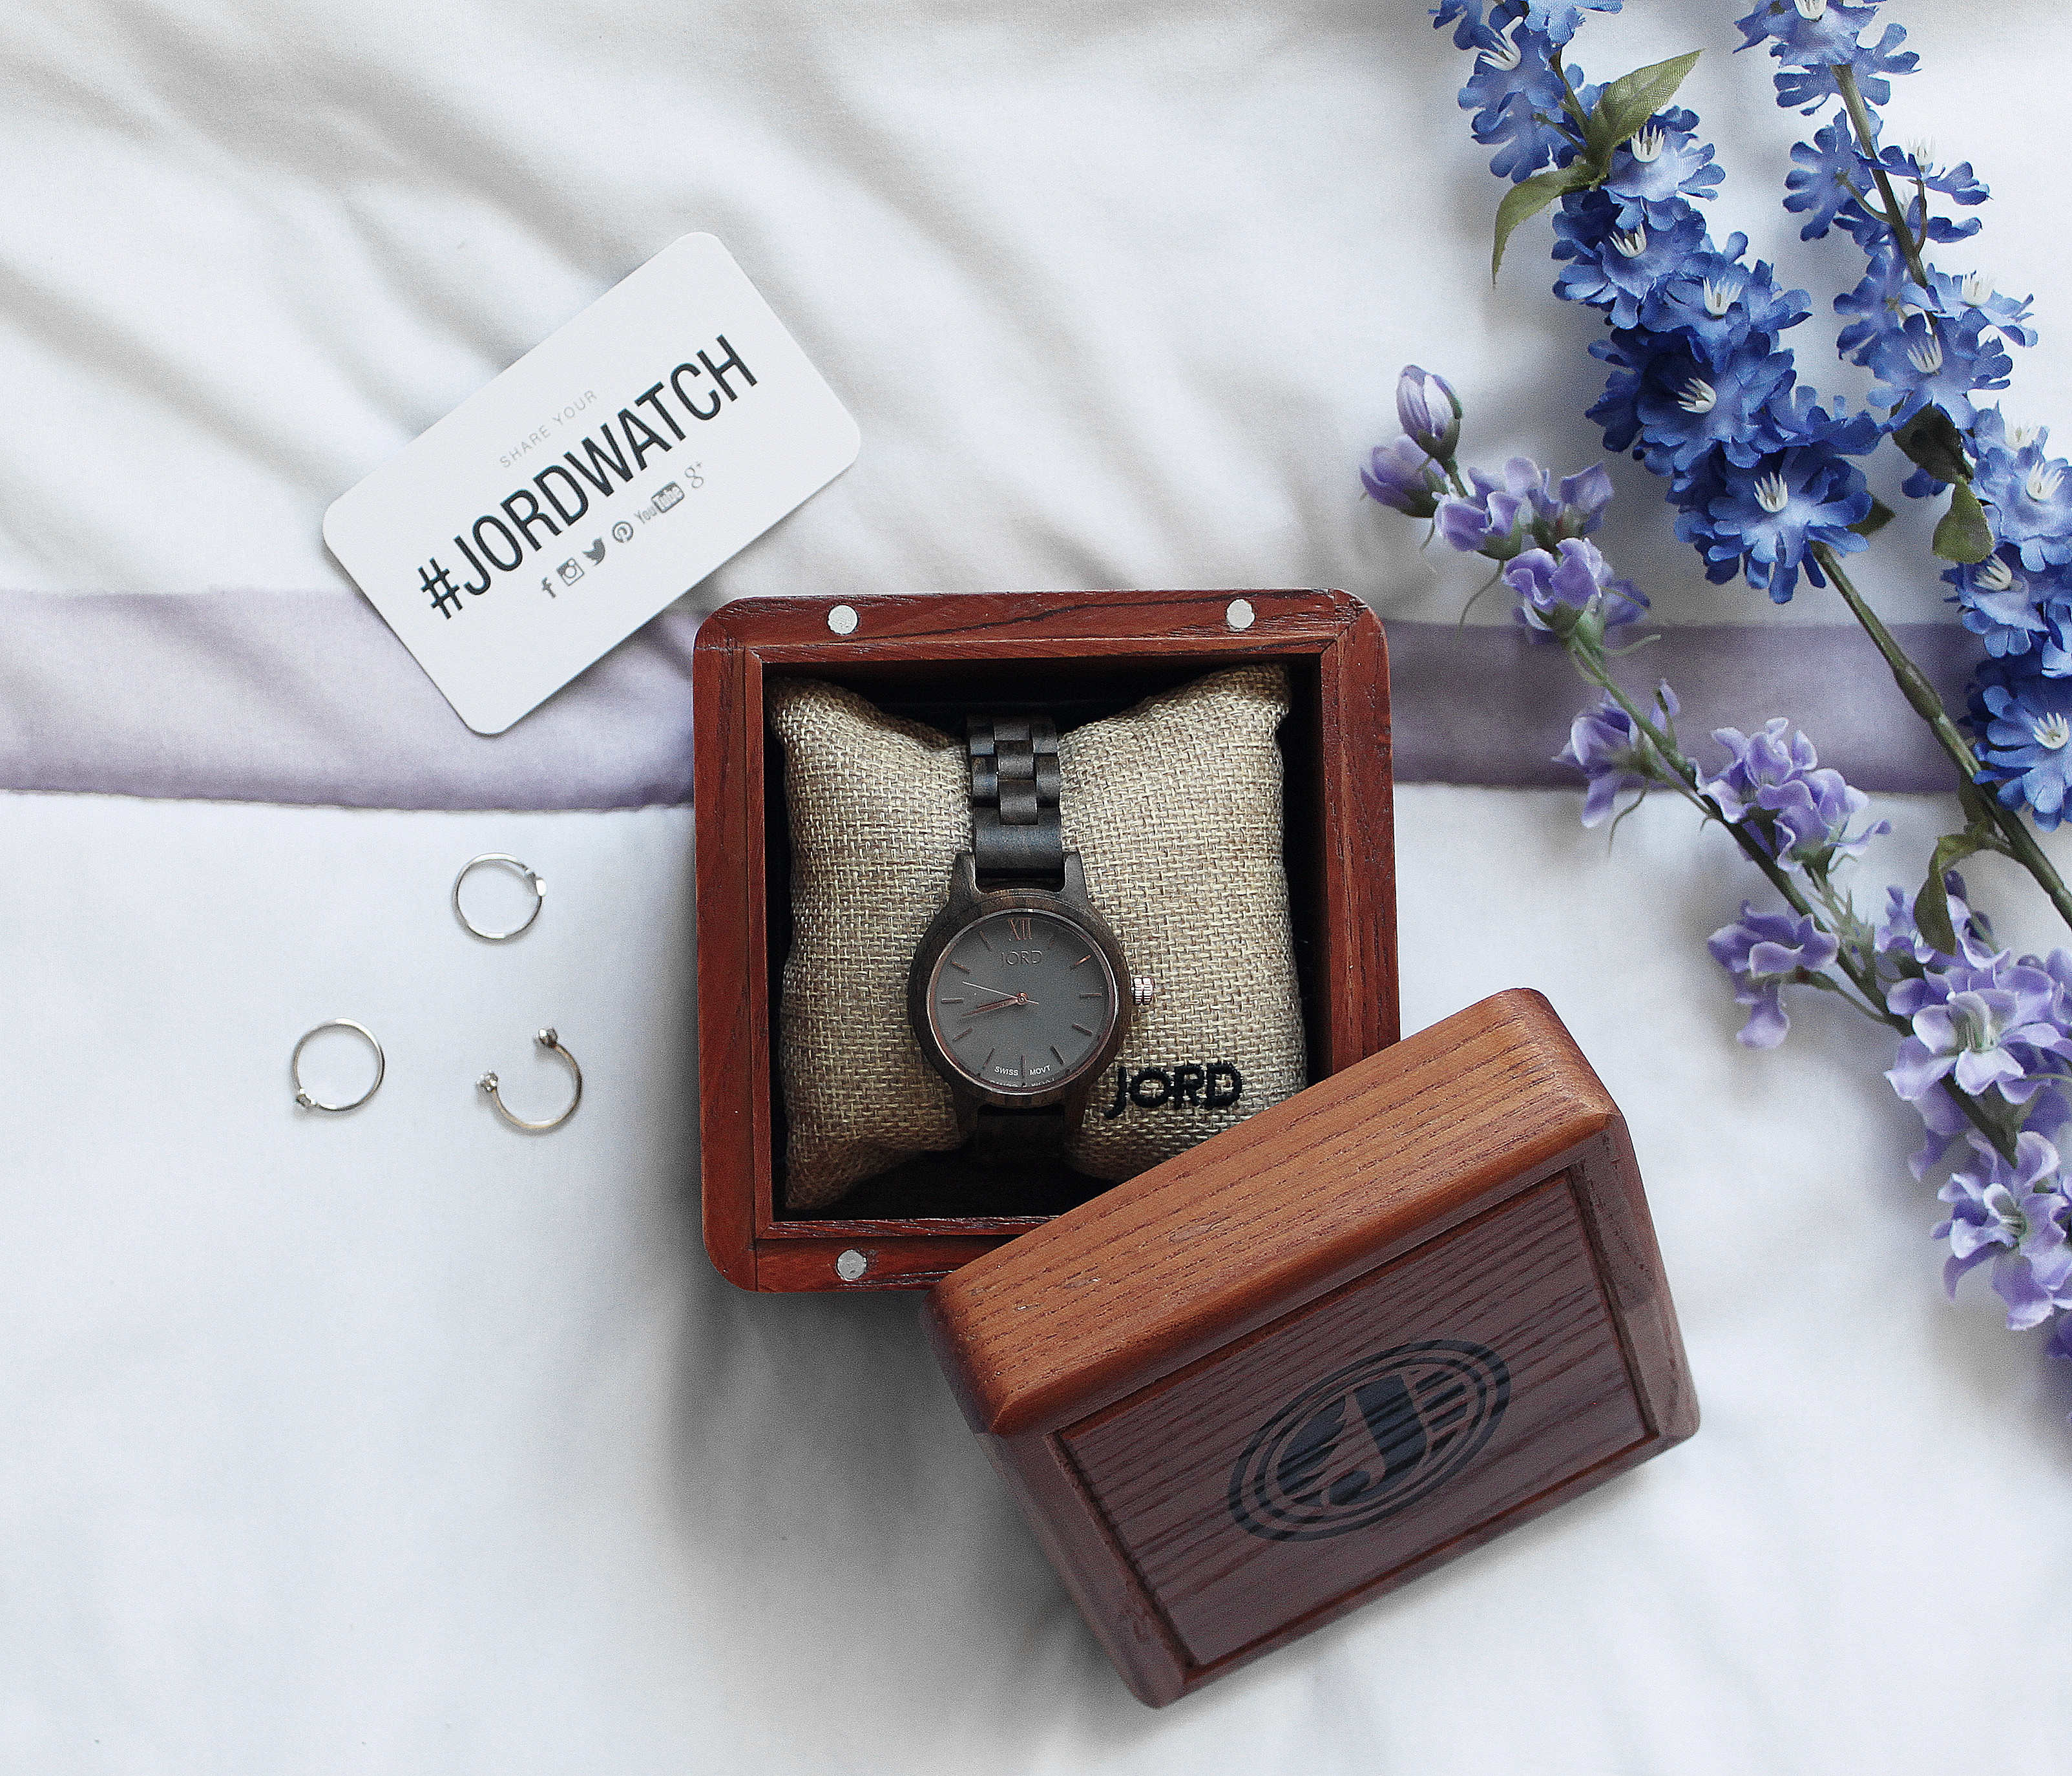 4731-ootd-fashion-style-outfitoftheday-wiwt-jord-jordwatches-watches-lifestyle-clothestoyouuu-elizabeeetht-flatlay